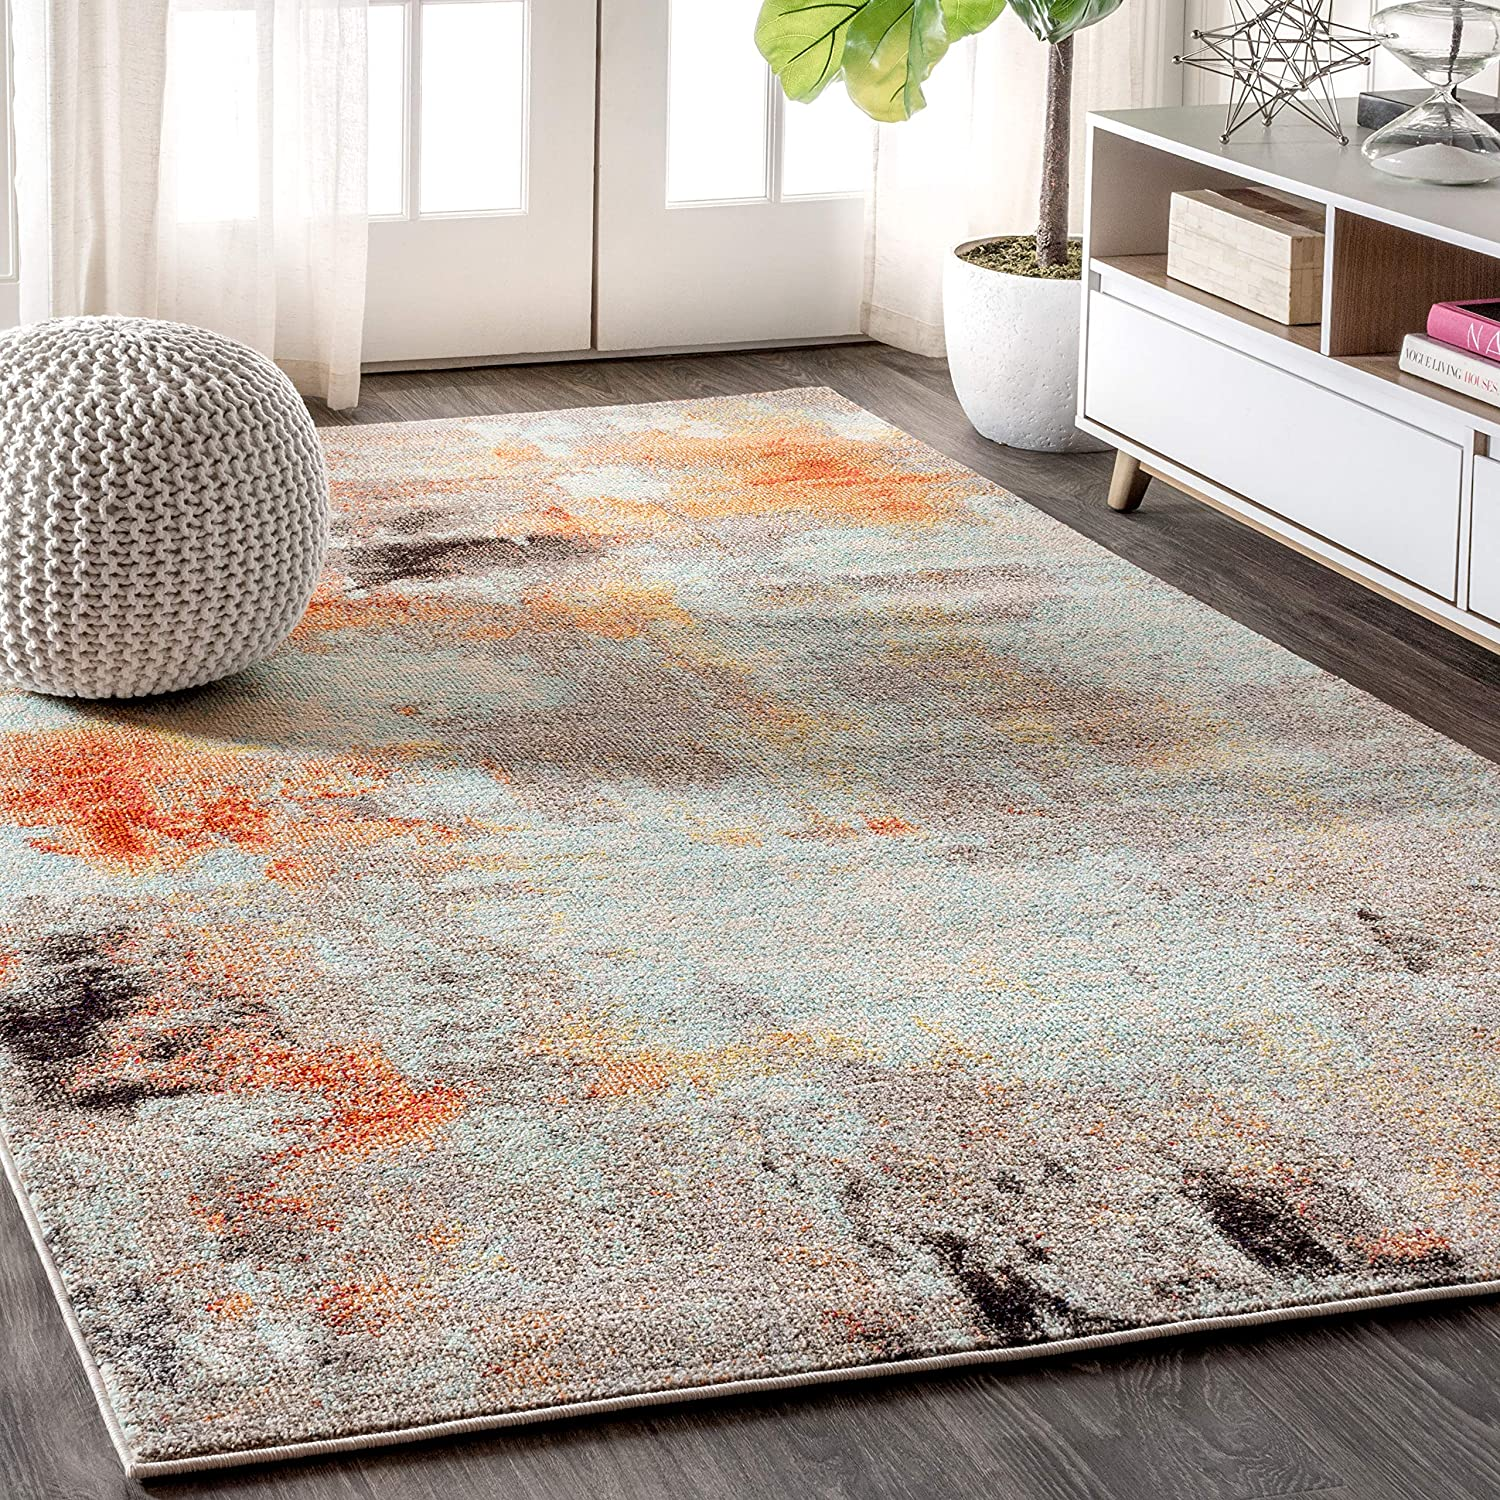 JONATHAN Y Contemporary POP Modern Abstract Vintage Cream/Orange 8 ft. x 10 ft. Area-Rug, Bohemian, Easy-Cleaning, For Bedroom, Kitchen, Living Room, Non Shedding